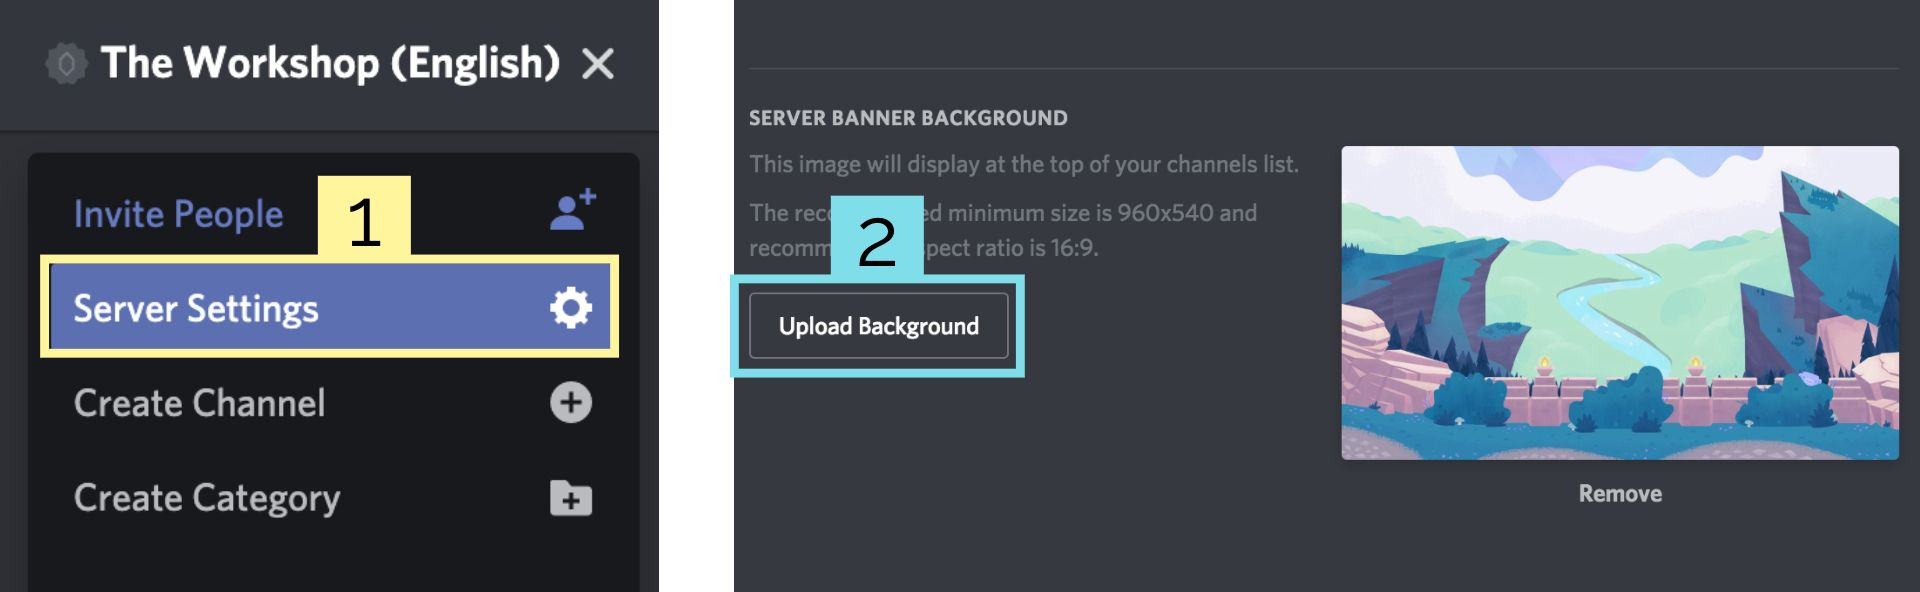 Screenshots showing how to upload a server background banner image in Discord.